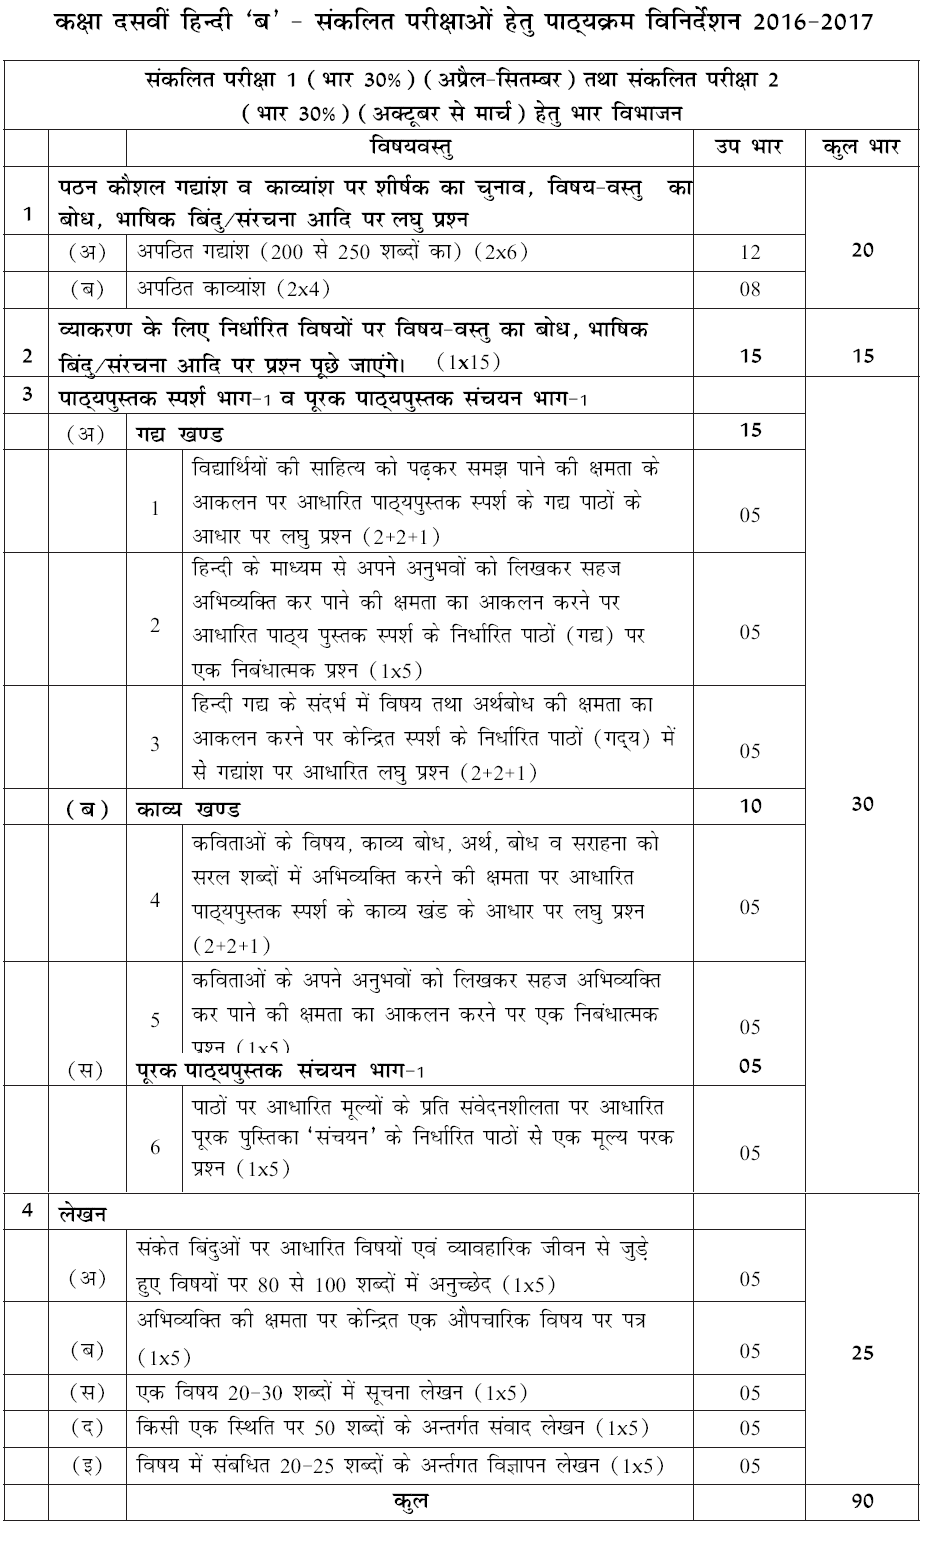 Cbse syllabus class 10 hindi course b 2016 2017 sa i sa click here to get the complete syllabus of cbse class 10 hindi course b in pdf format malvernweather Gallery